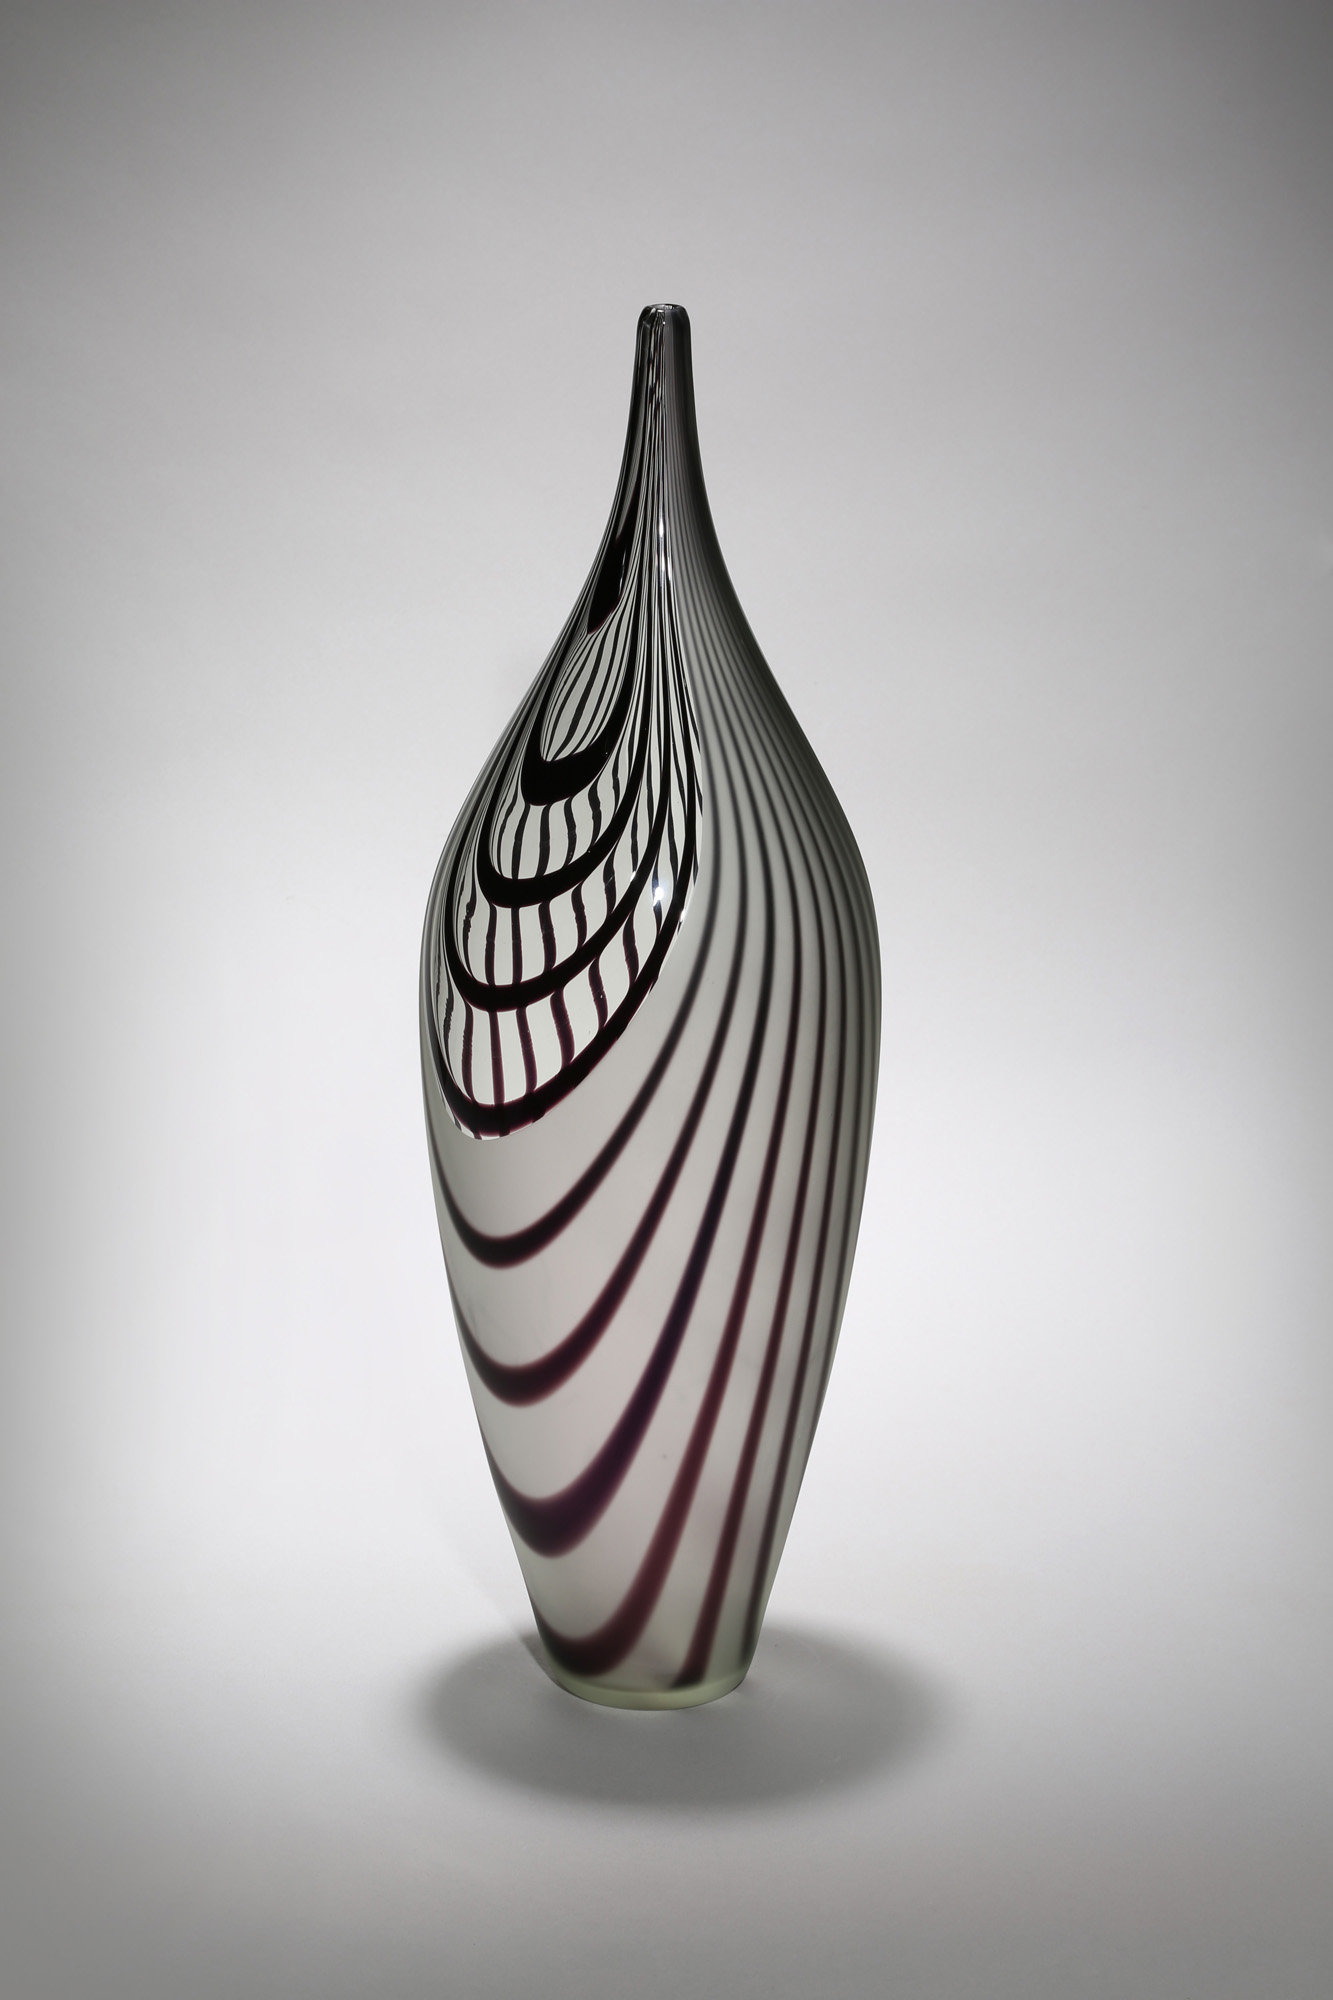 Large Glass Vessel : ... by Michael Hermann and Gina Lunn (Art Glass Vessel) Artful Home